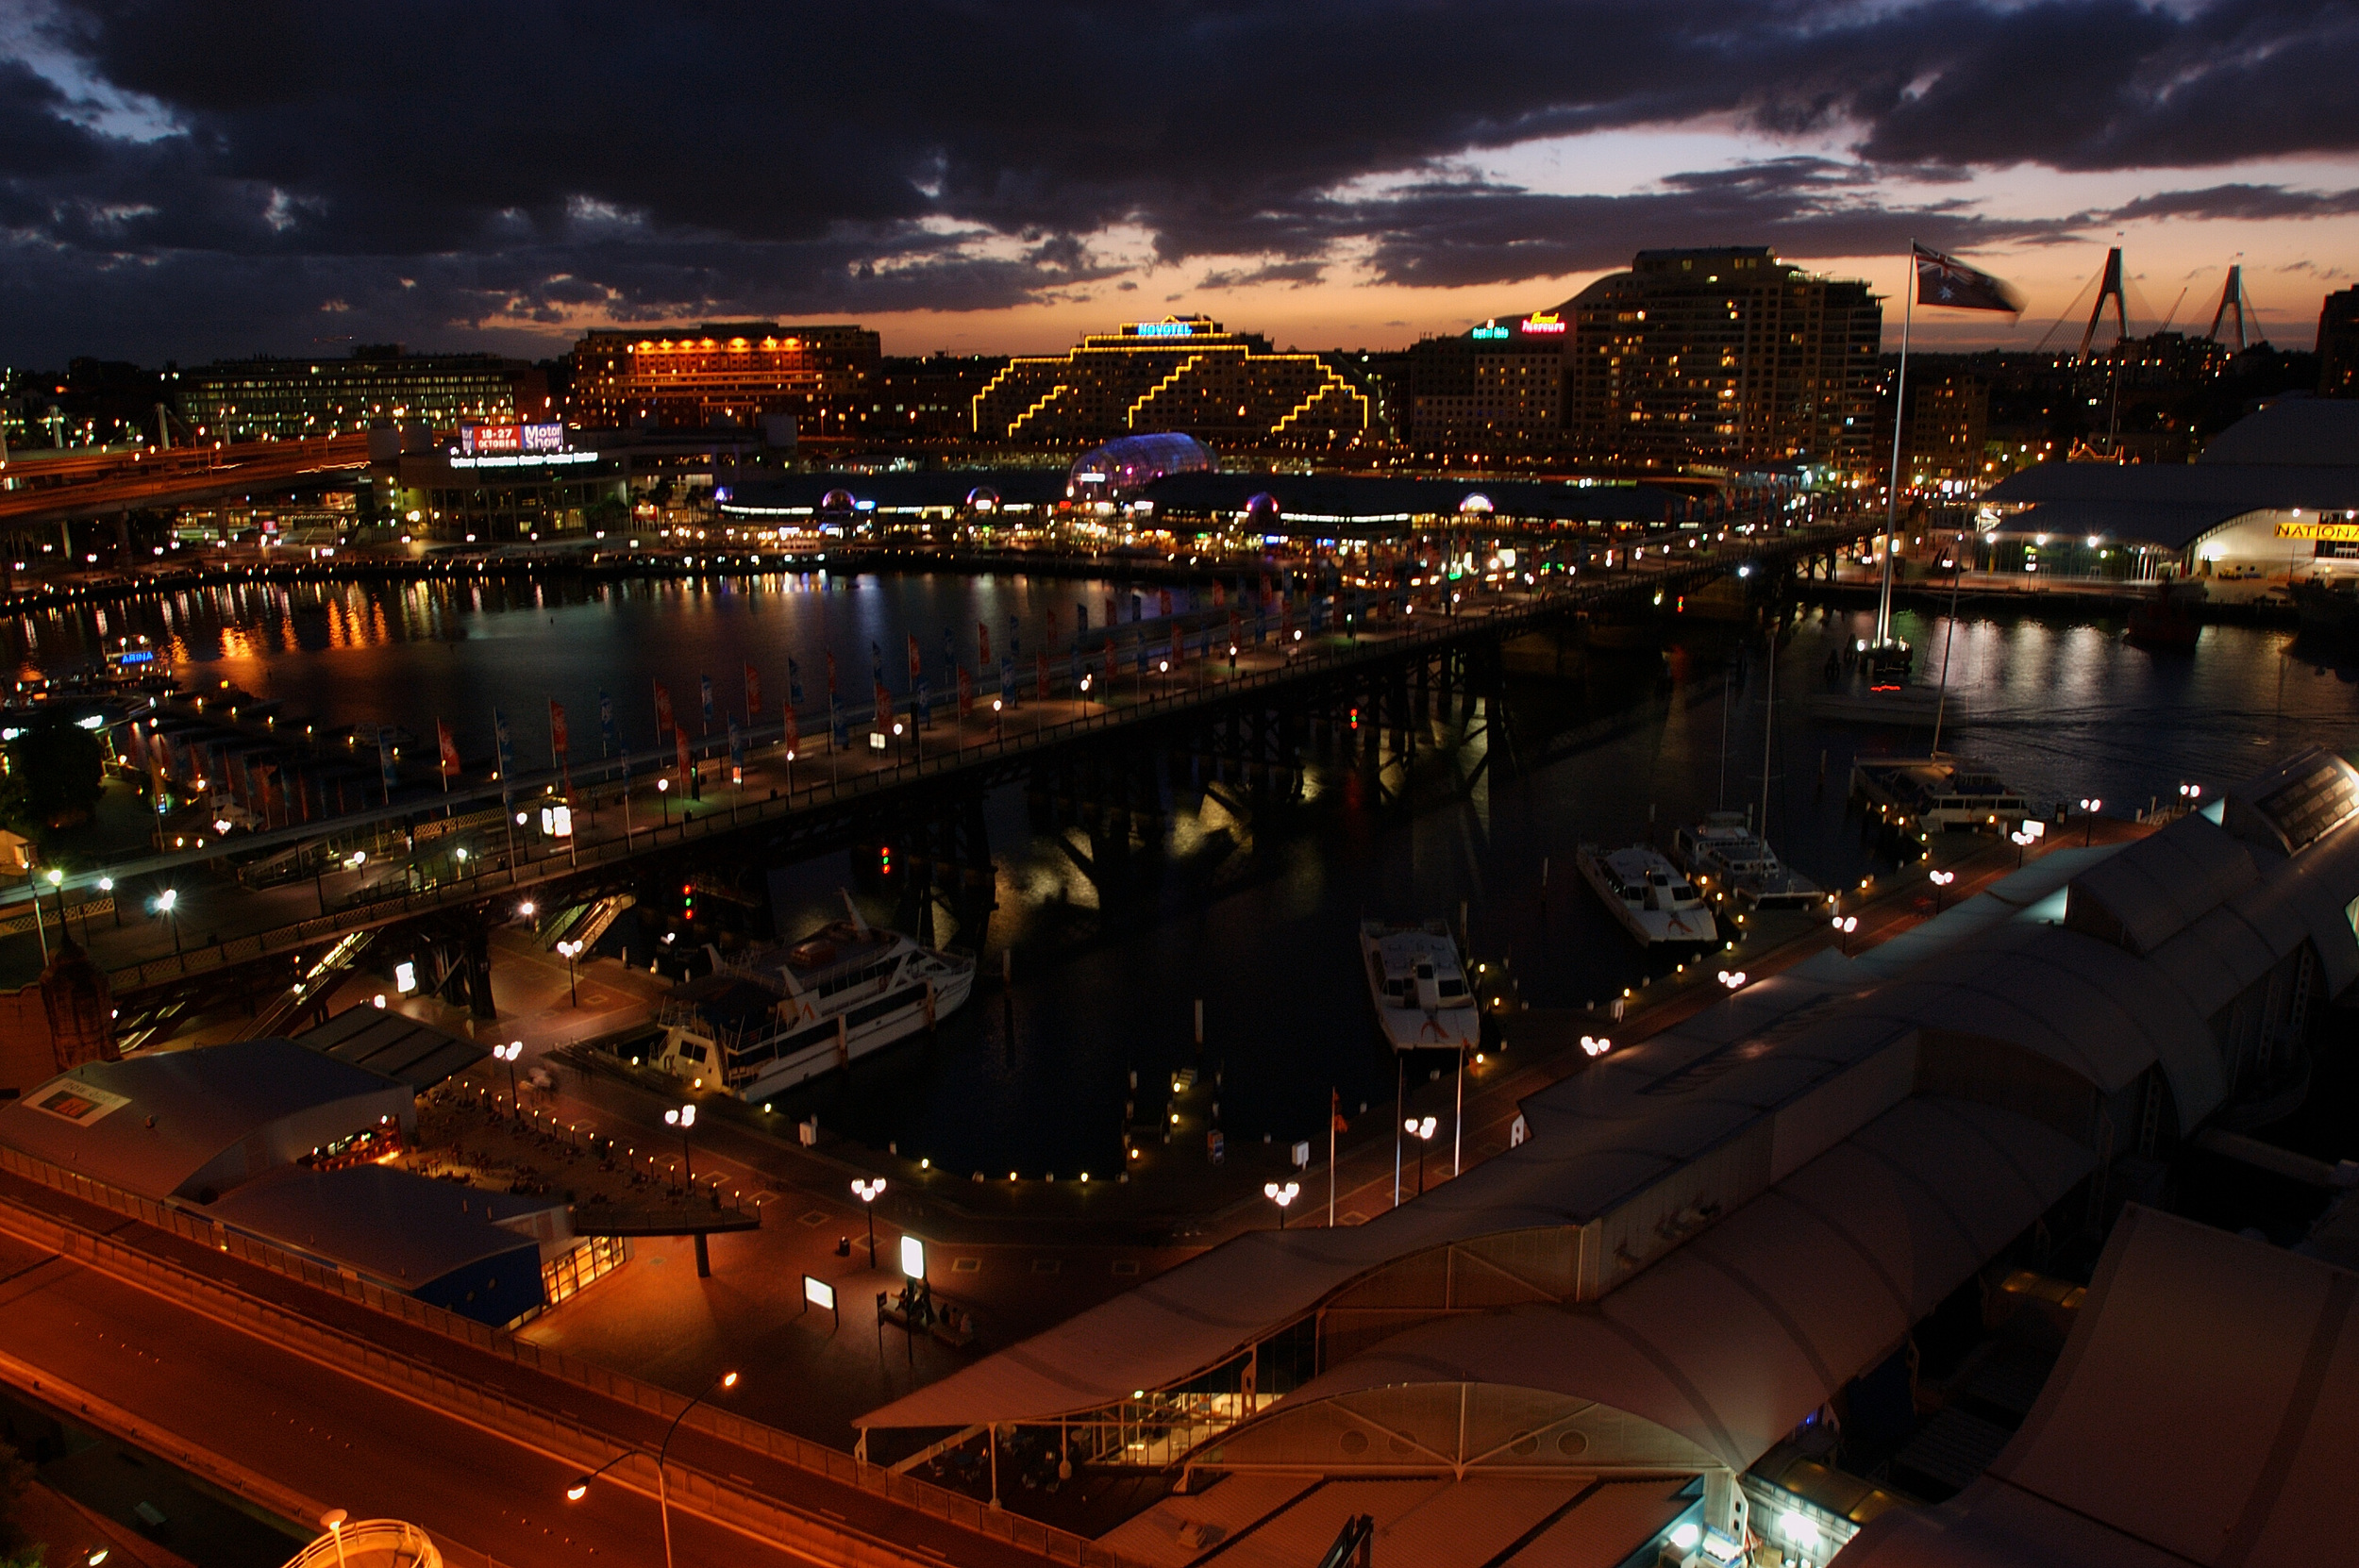 A view of the Pyrmont Bridge and Harboursidefrom the Sheraton Four Points at night